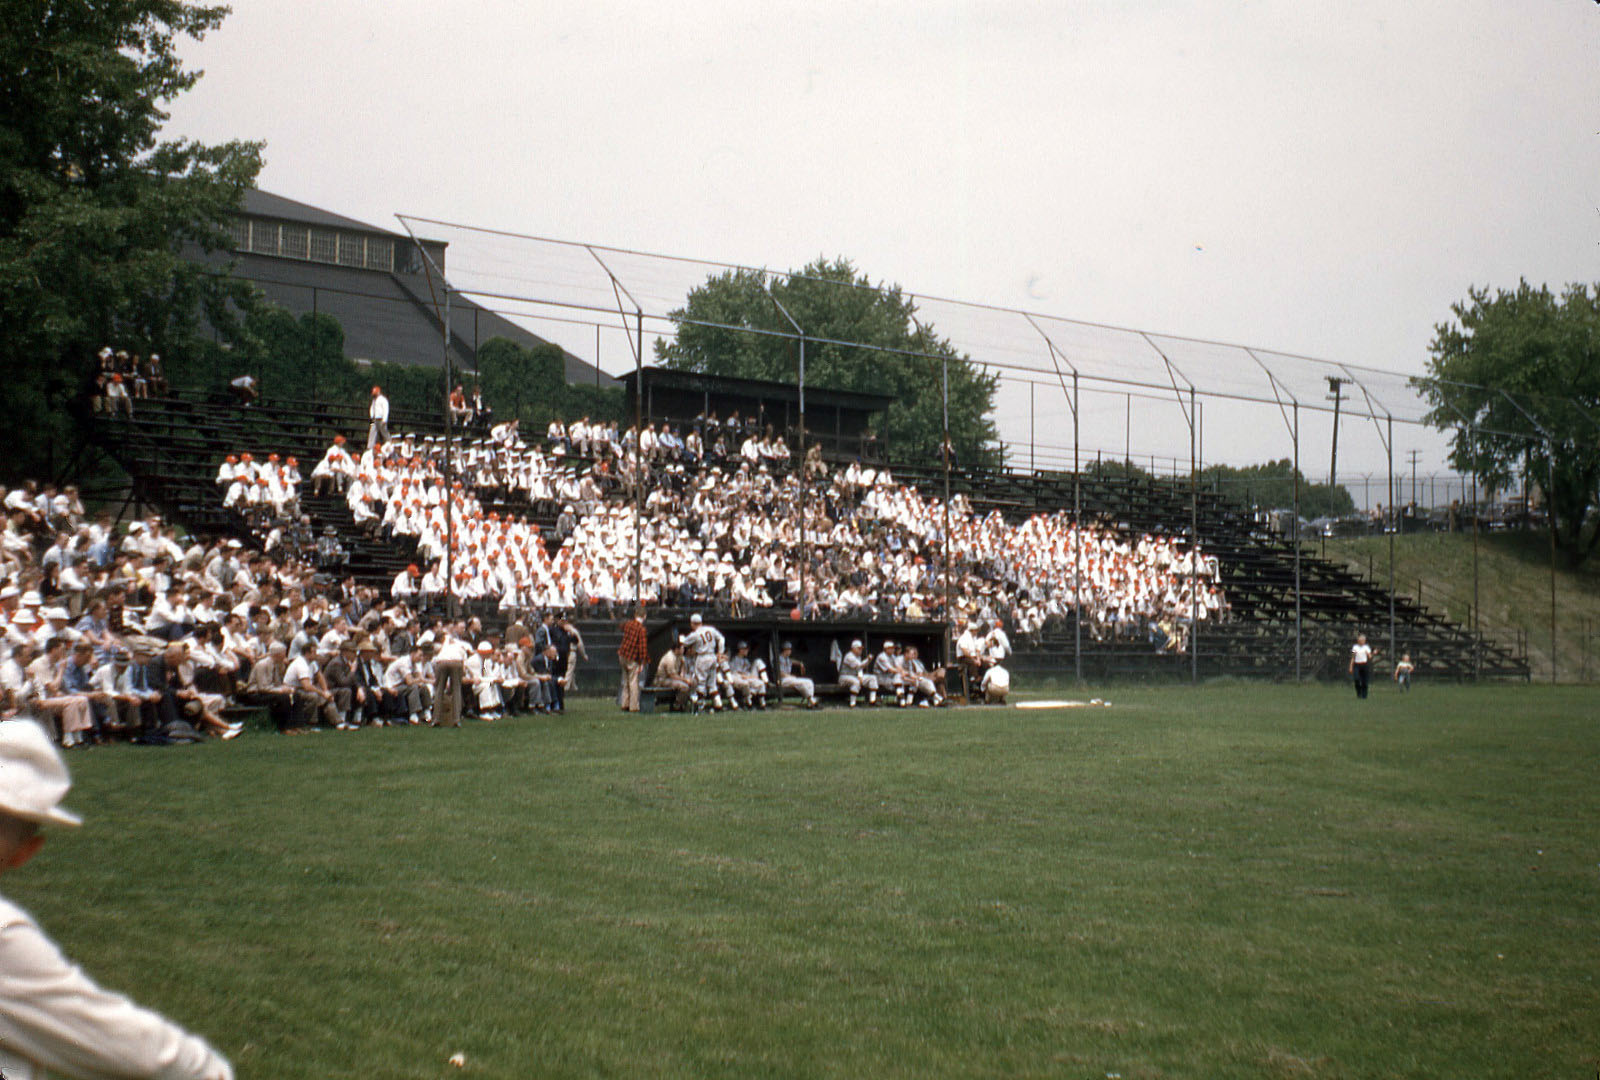 Lehigh Vs. Cornell Baseball Game, 1948